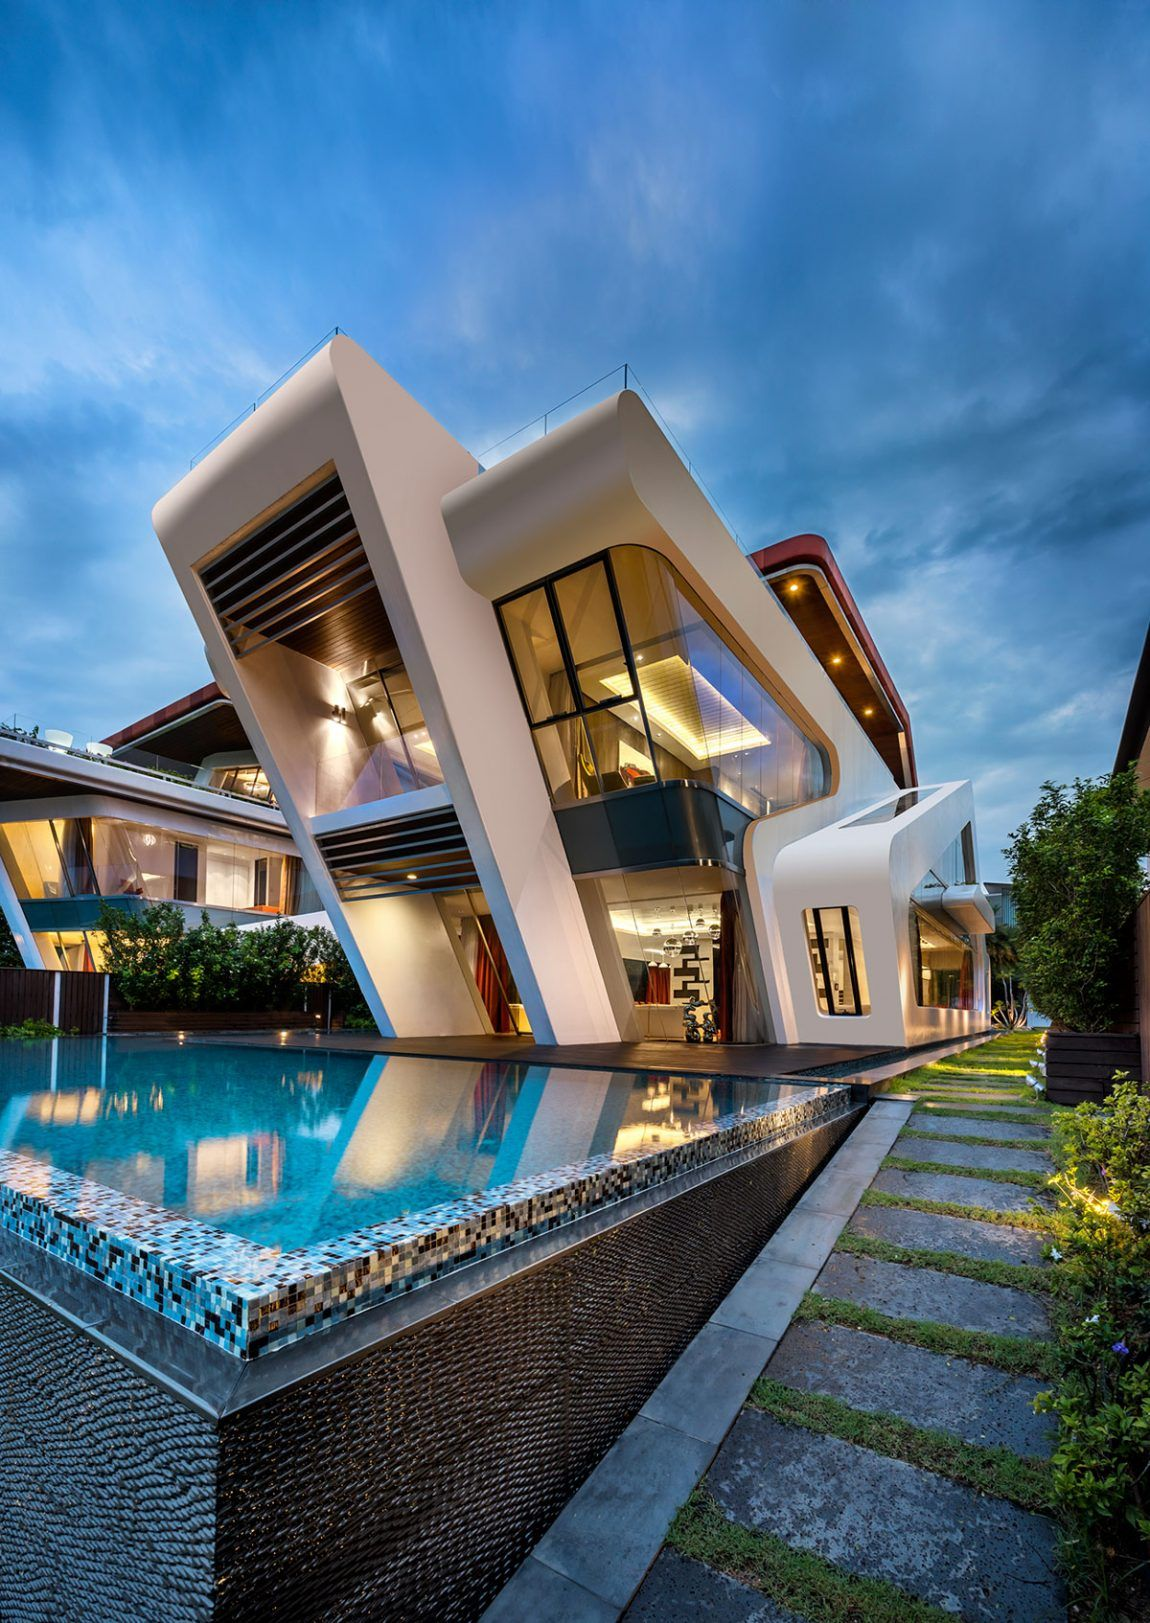 Villa mistral by mercurio design lab singapore also dream house rh pinterest